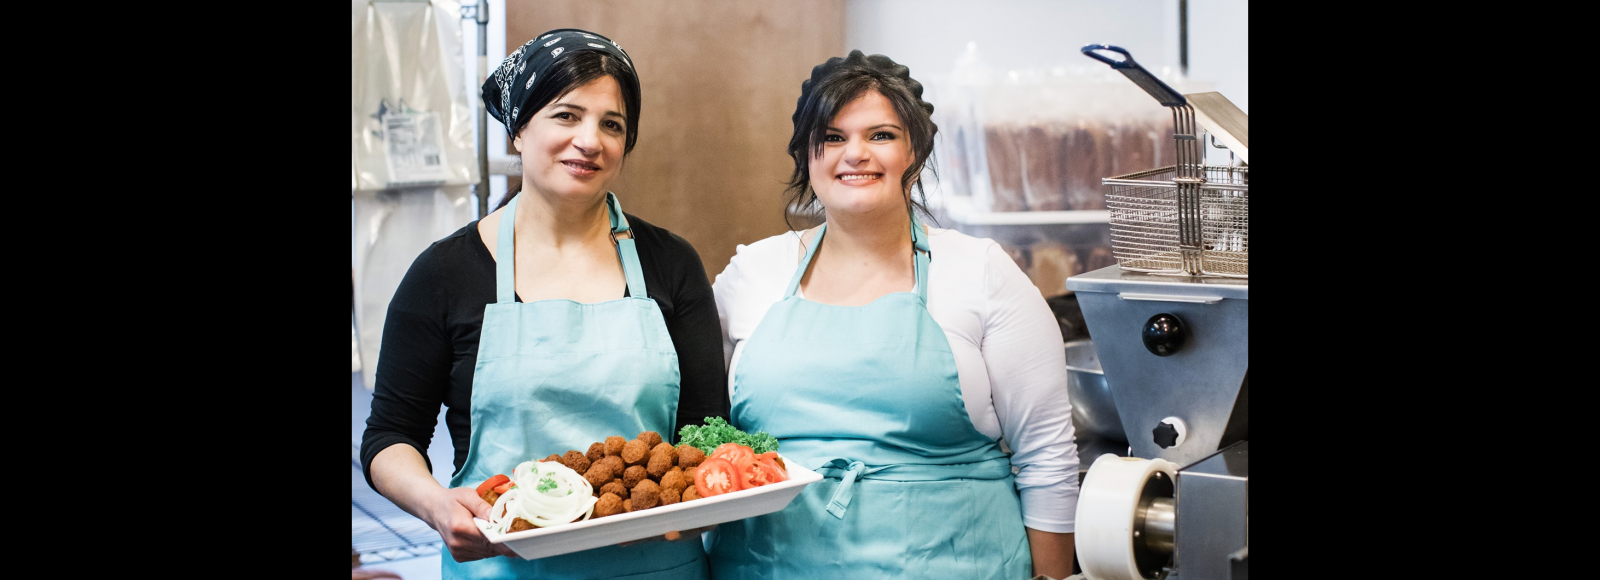 Two women wearing light blue aprons smile at the camera. The woman on the left is holding a platter of falafel.